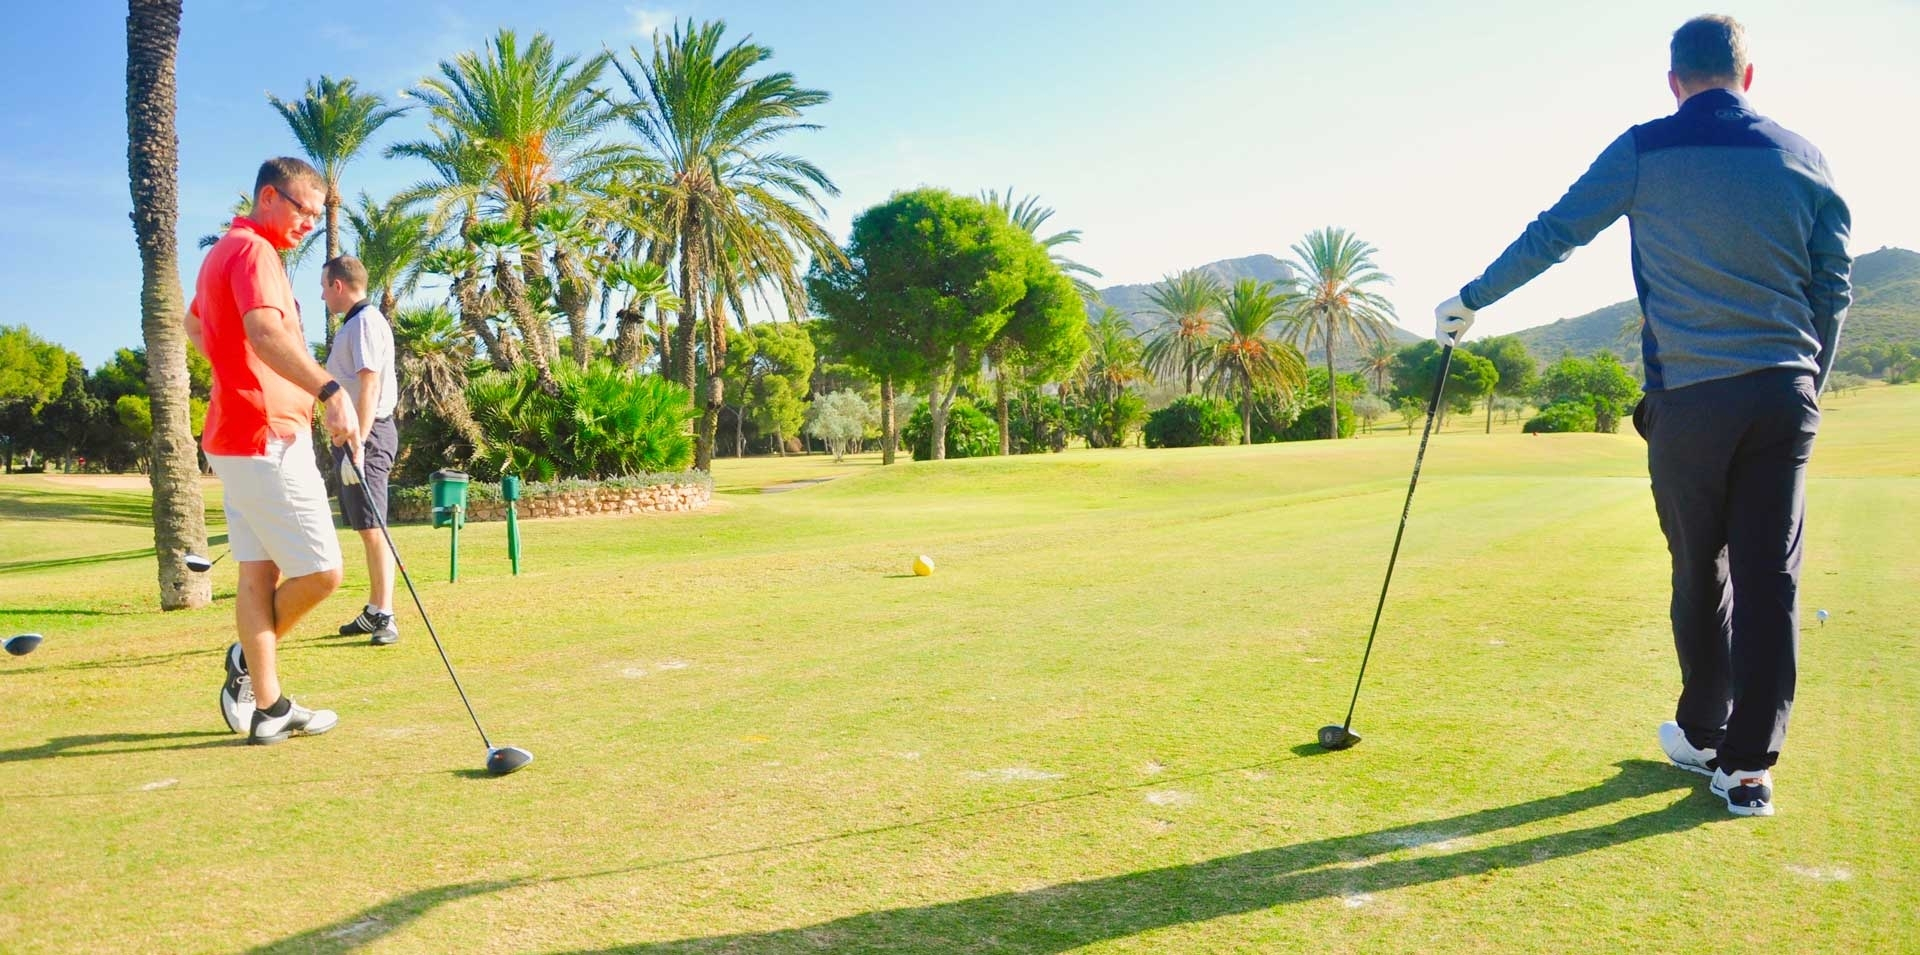 golf-club-hire-spain-alicante-murcia-benidorm-alicante-lamanga